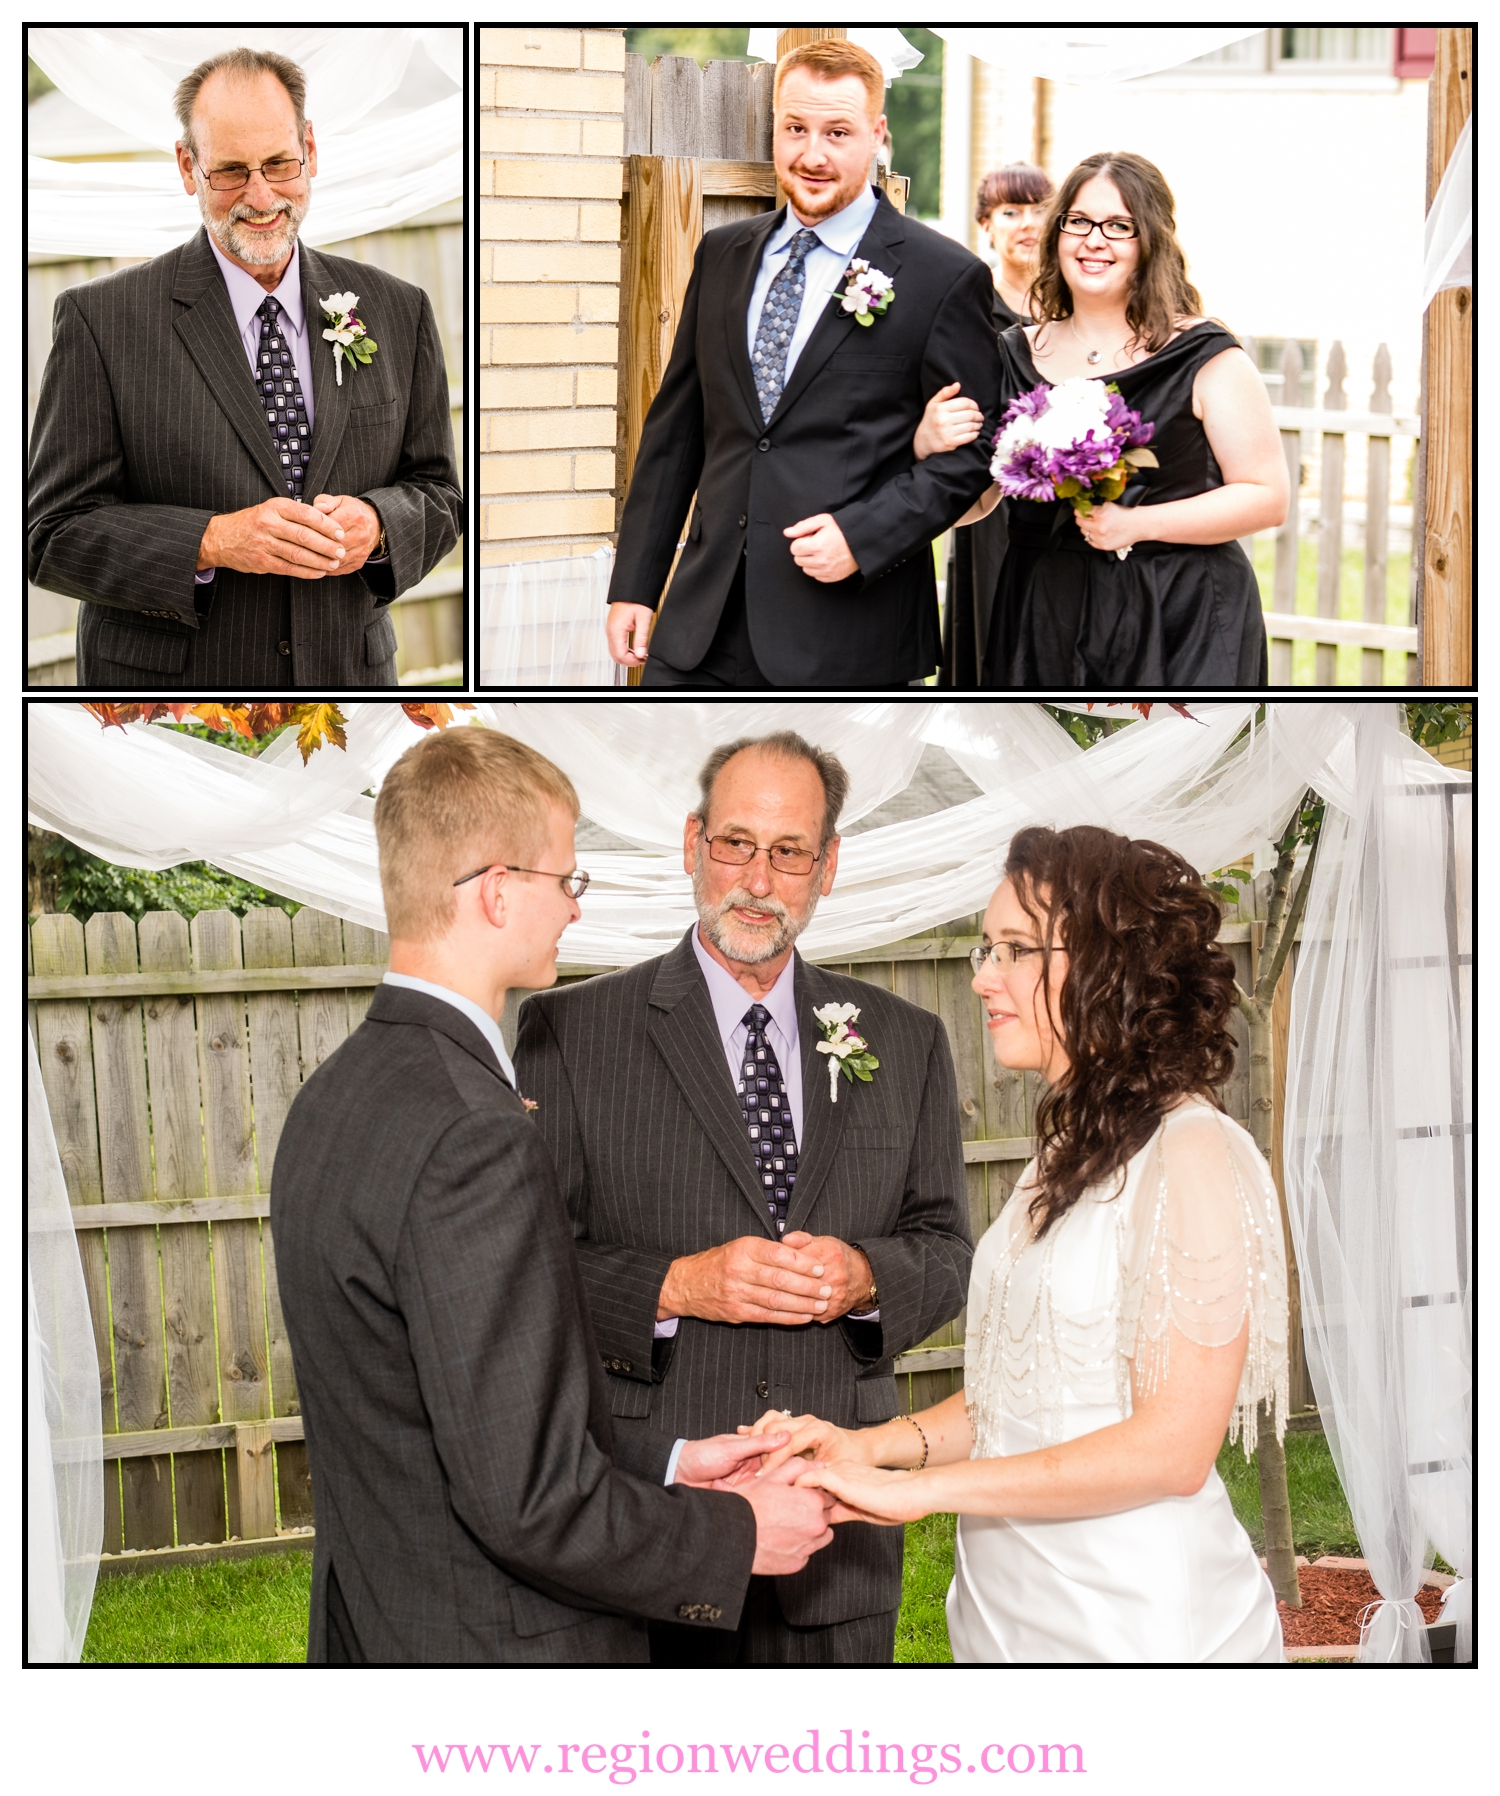 Photo collage of an intimate outdoor wedding ceremony.